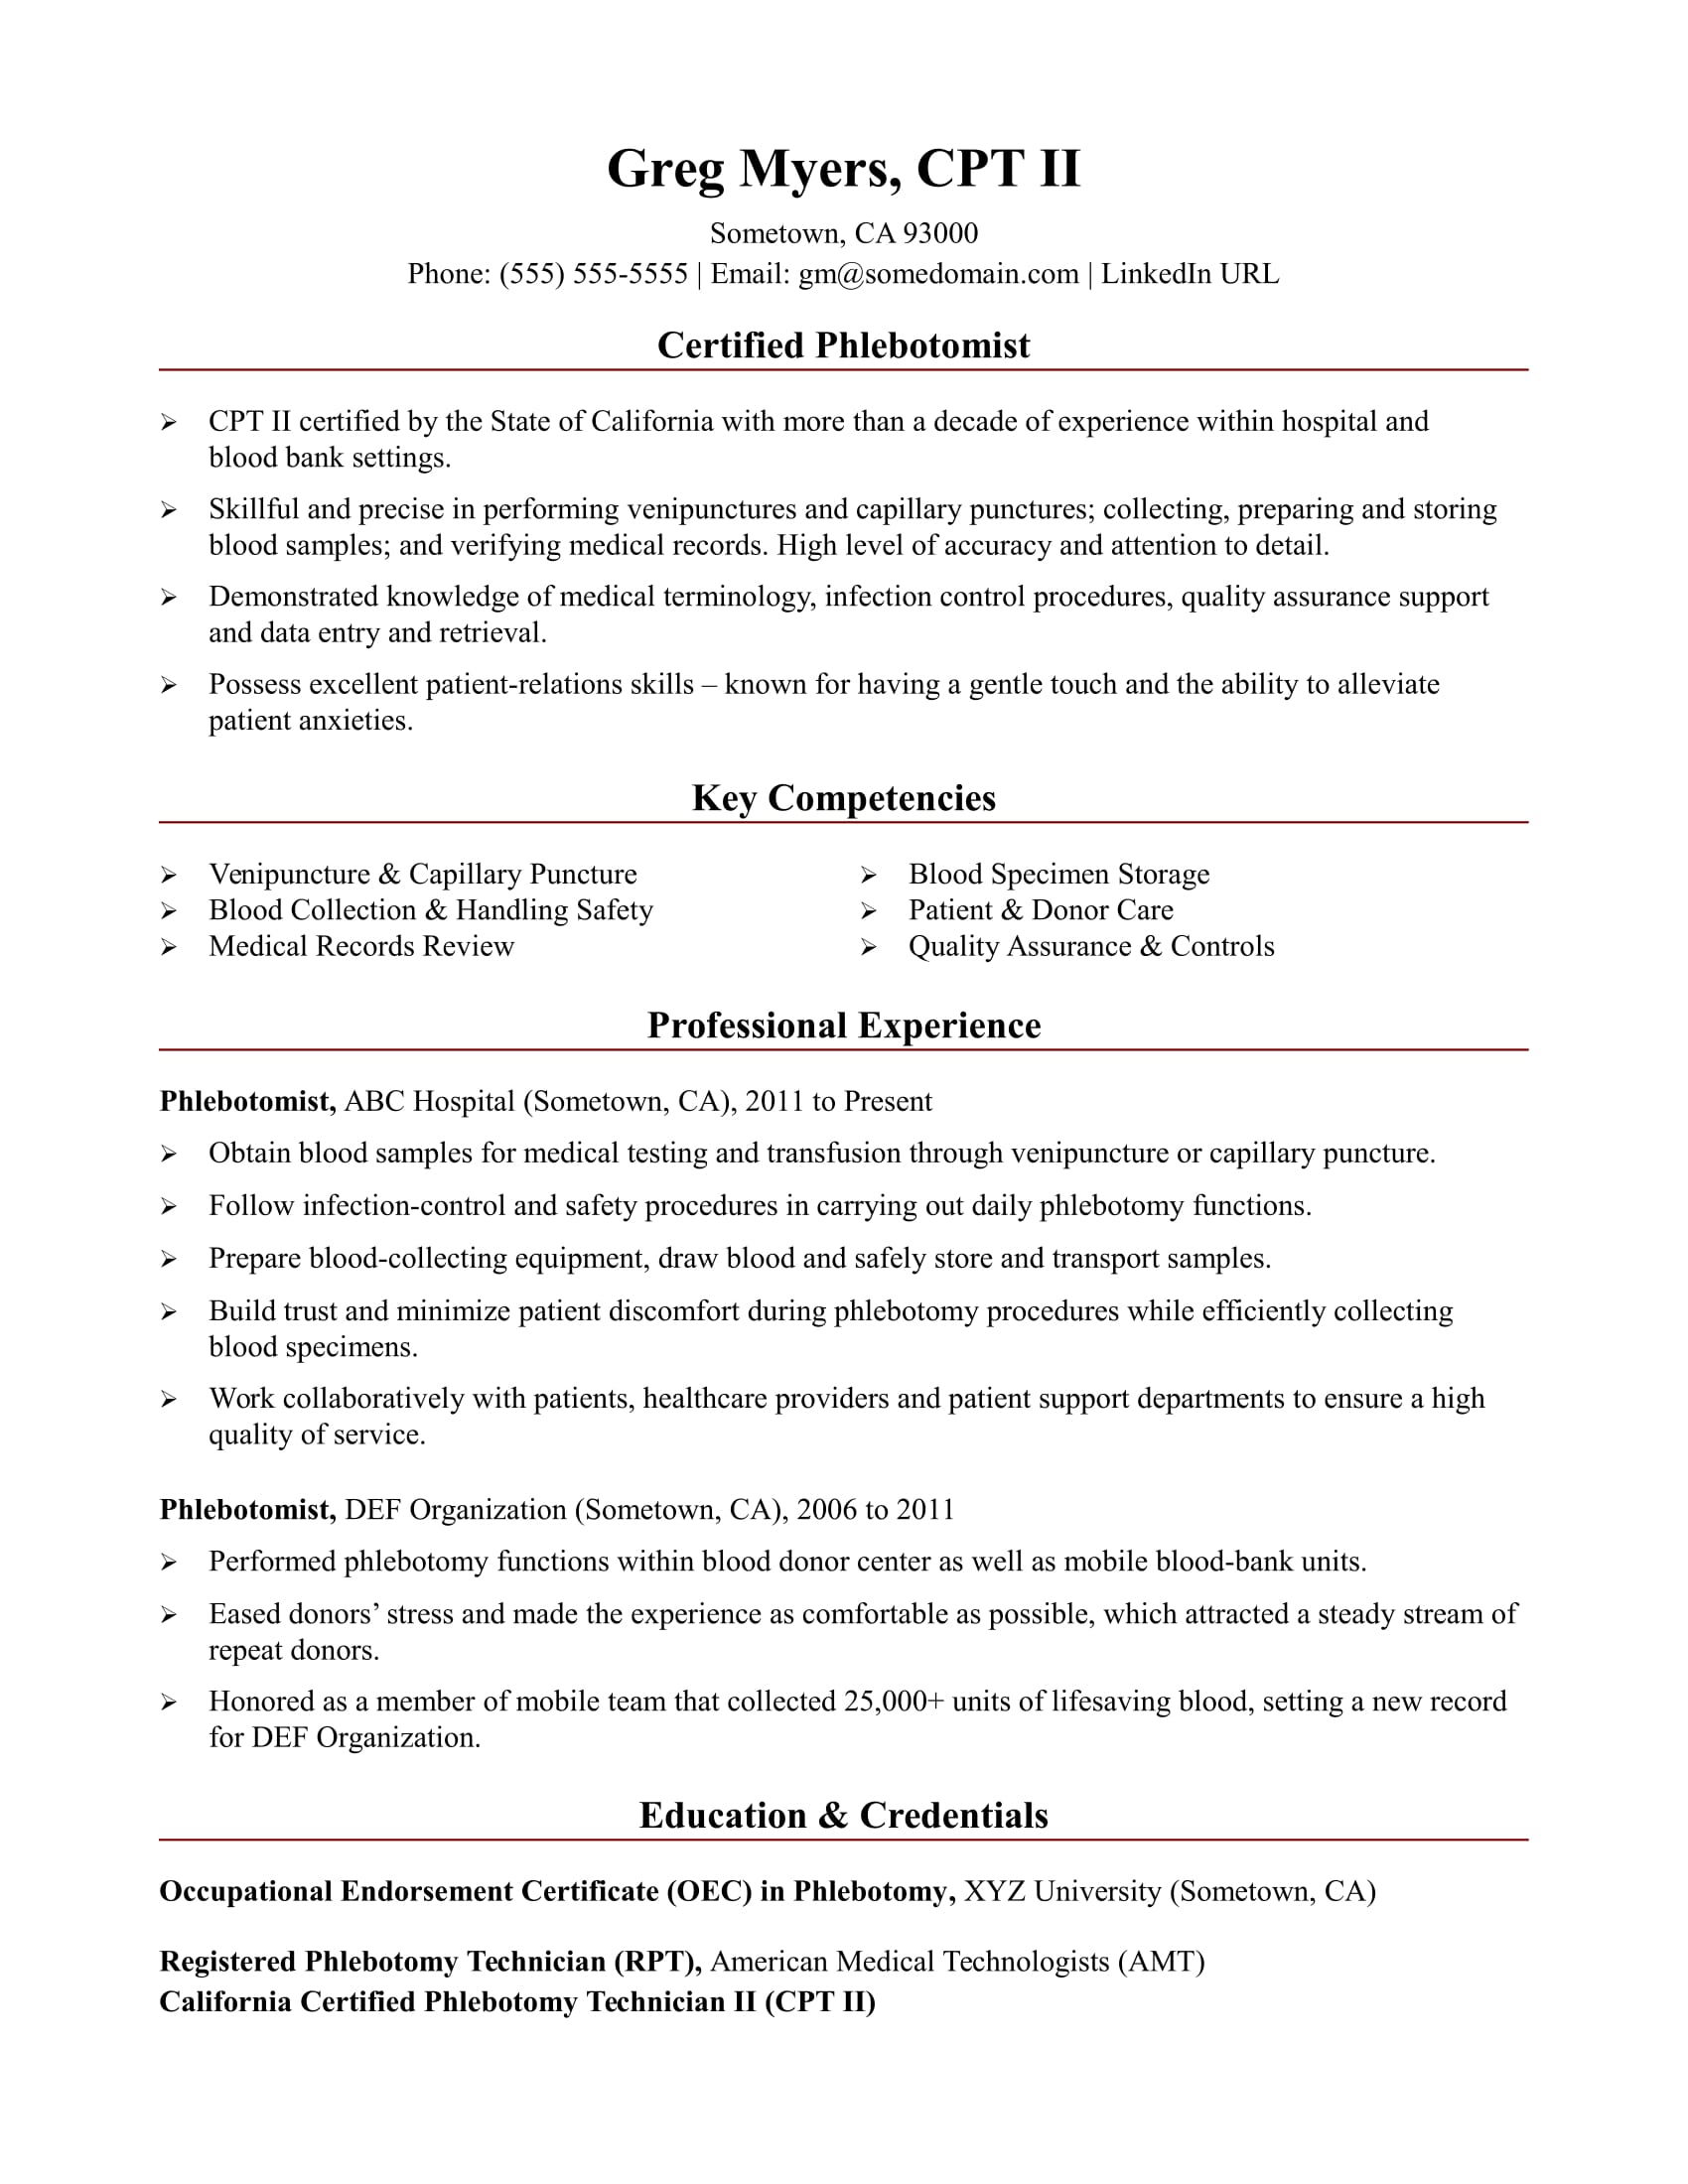 writing skills on resume